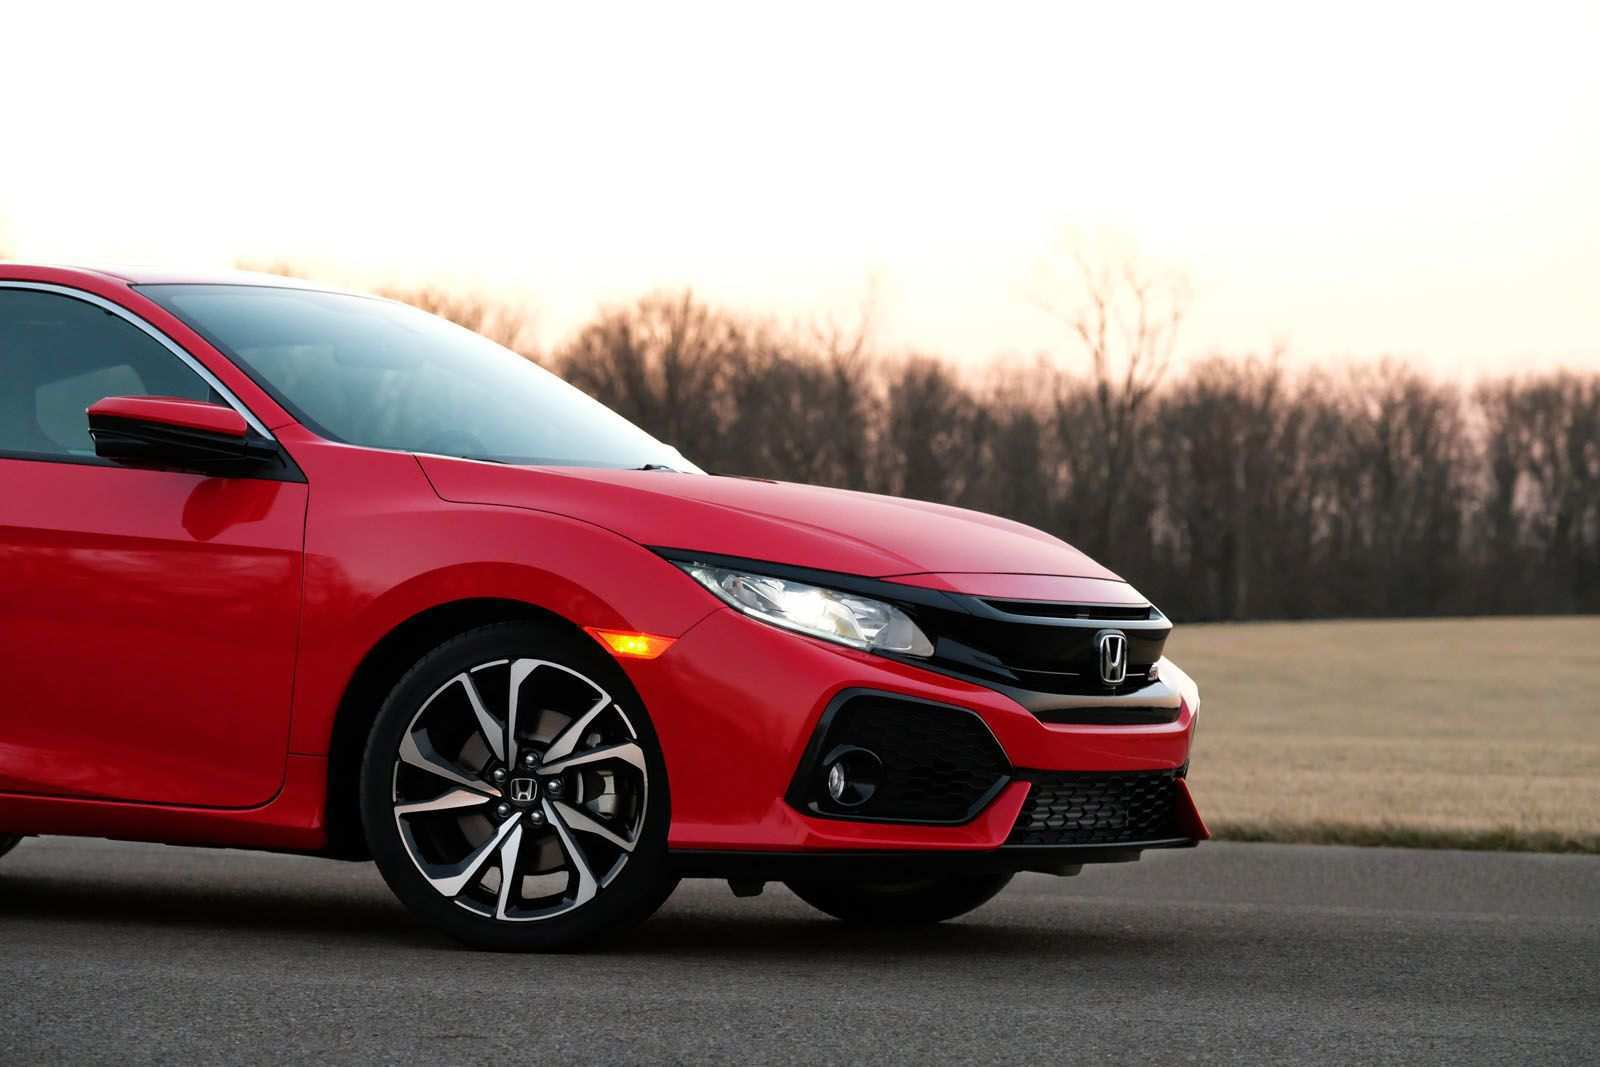 21 New 2019 Honda Civic Volume Knob Redesign Price And Review Spesification with 2019 Honda Civic Volume Knob Redesign Price And Review